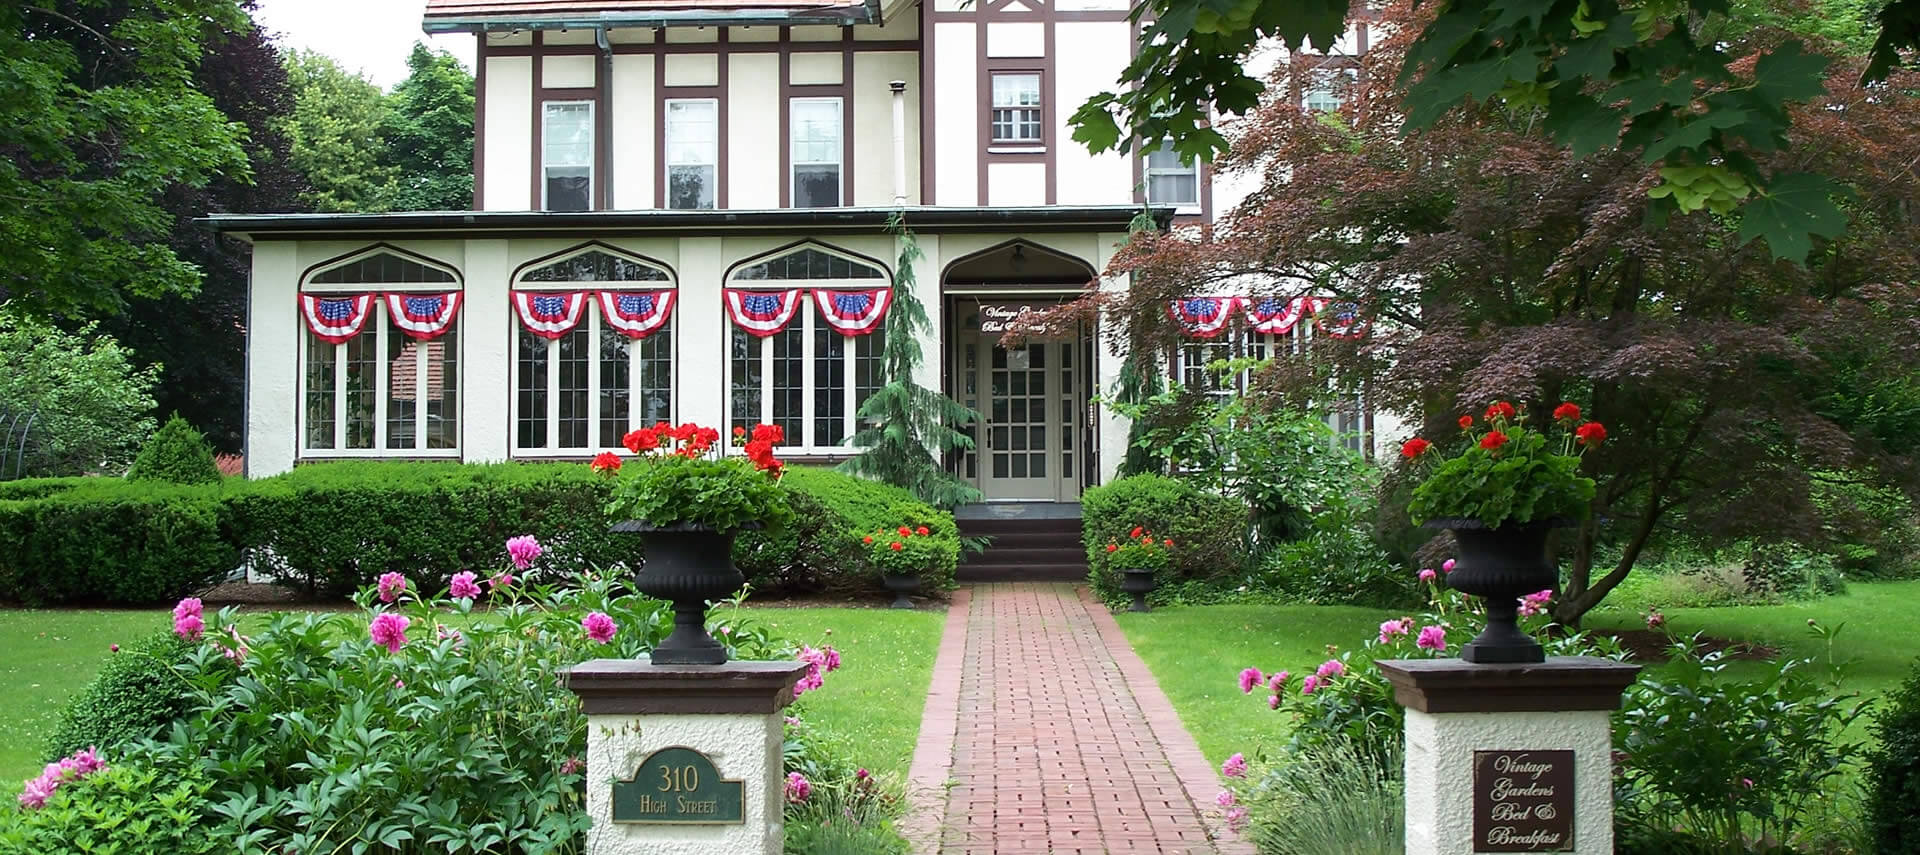 Large Tudor home decorated with red white and blue bunting.